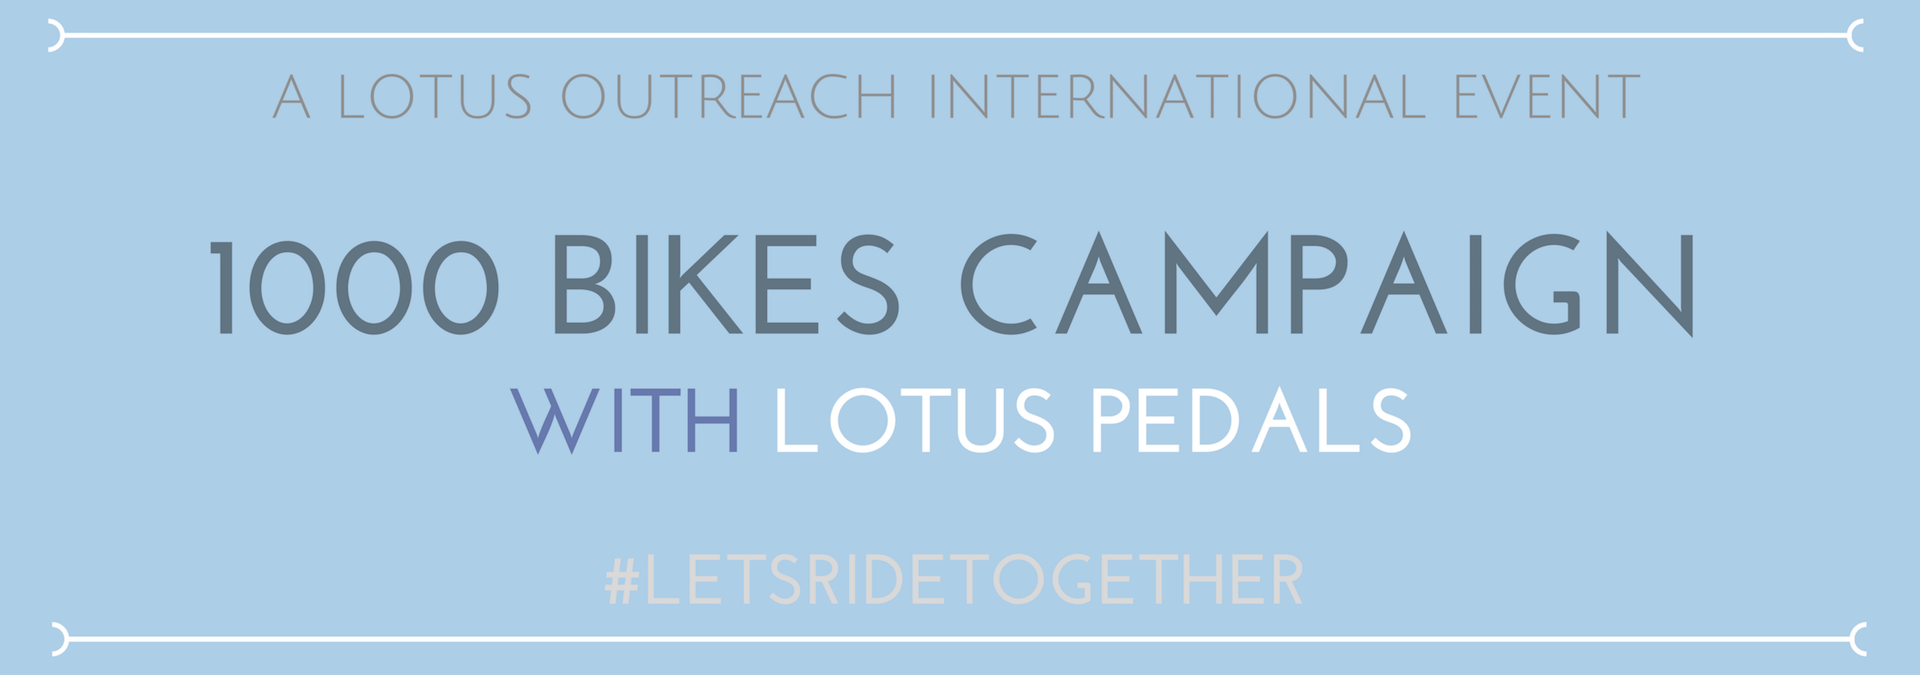 LotusOutreach International: 1000 Bikes Campaign